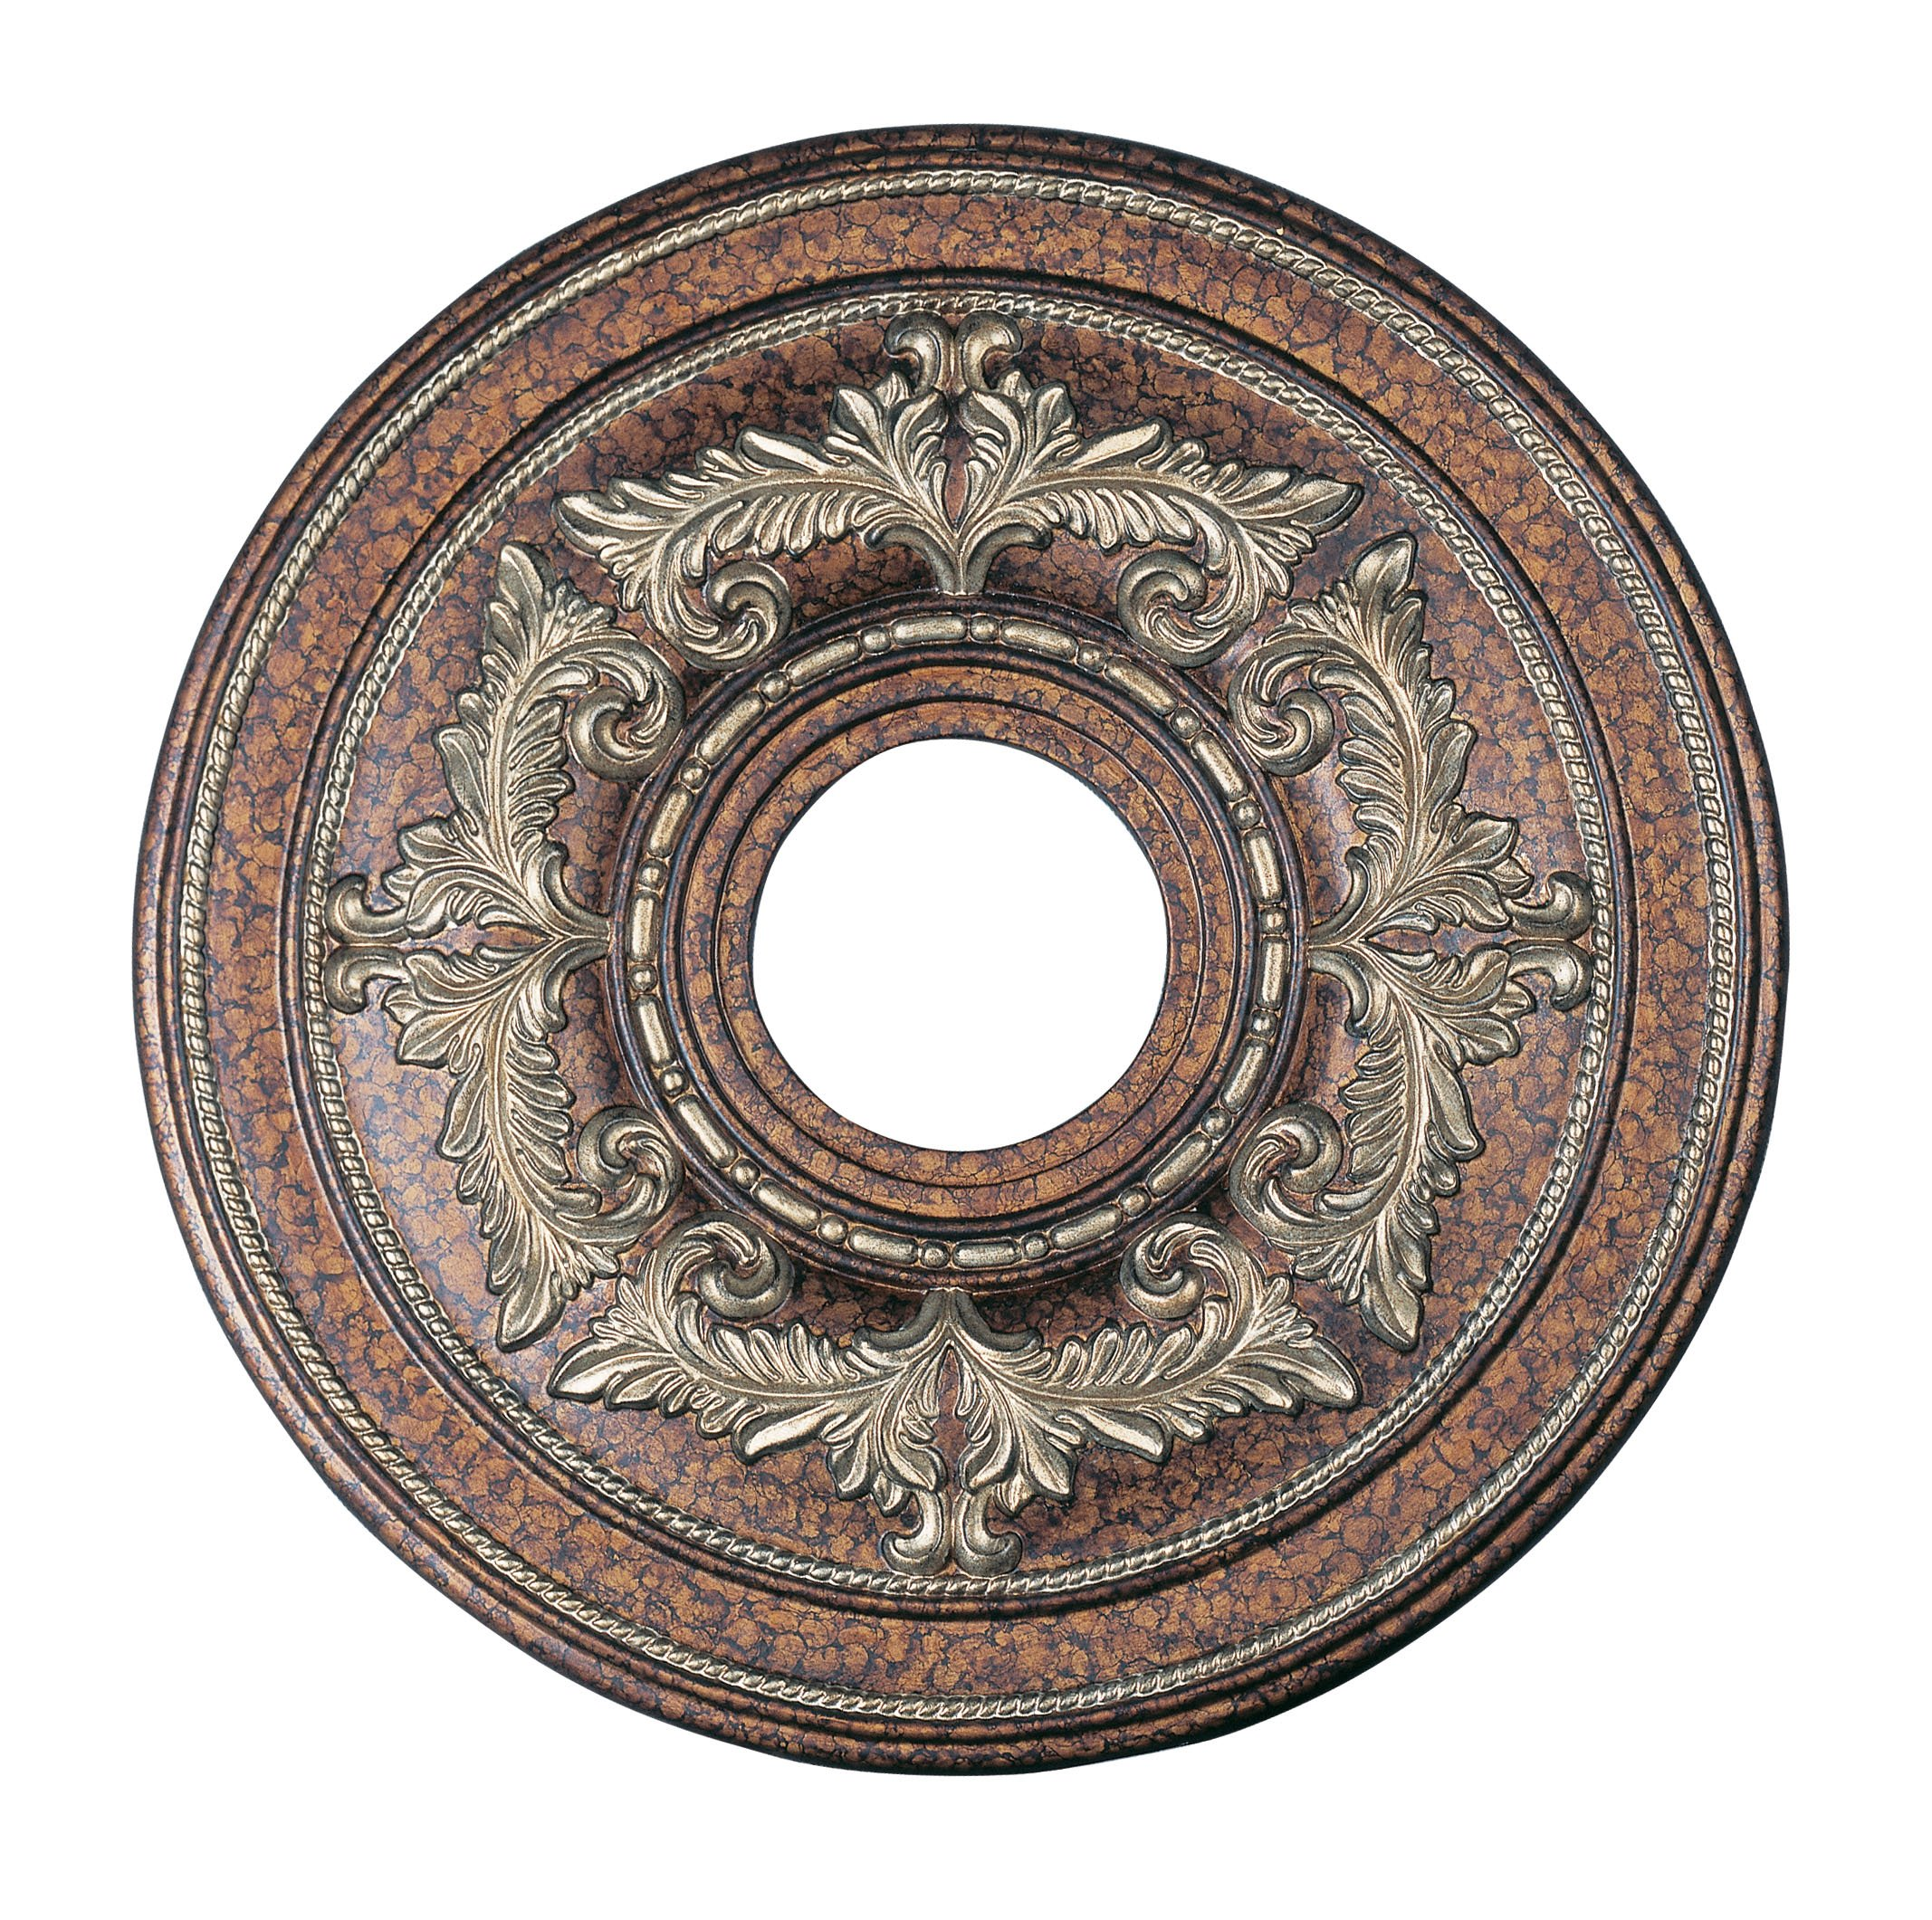 Livex Lighting 8205-64 Ceiling Medallion in Palacial Bronze with Gilded Accents